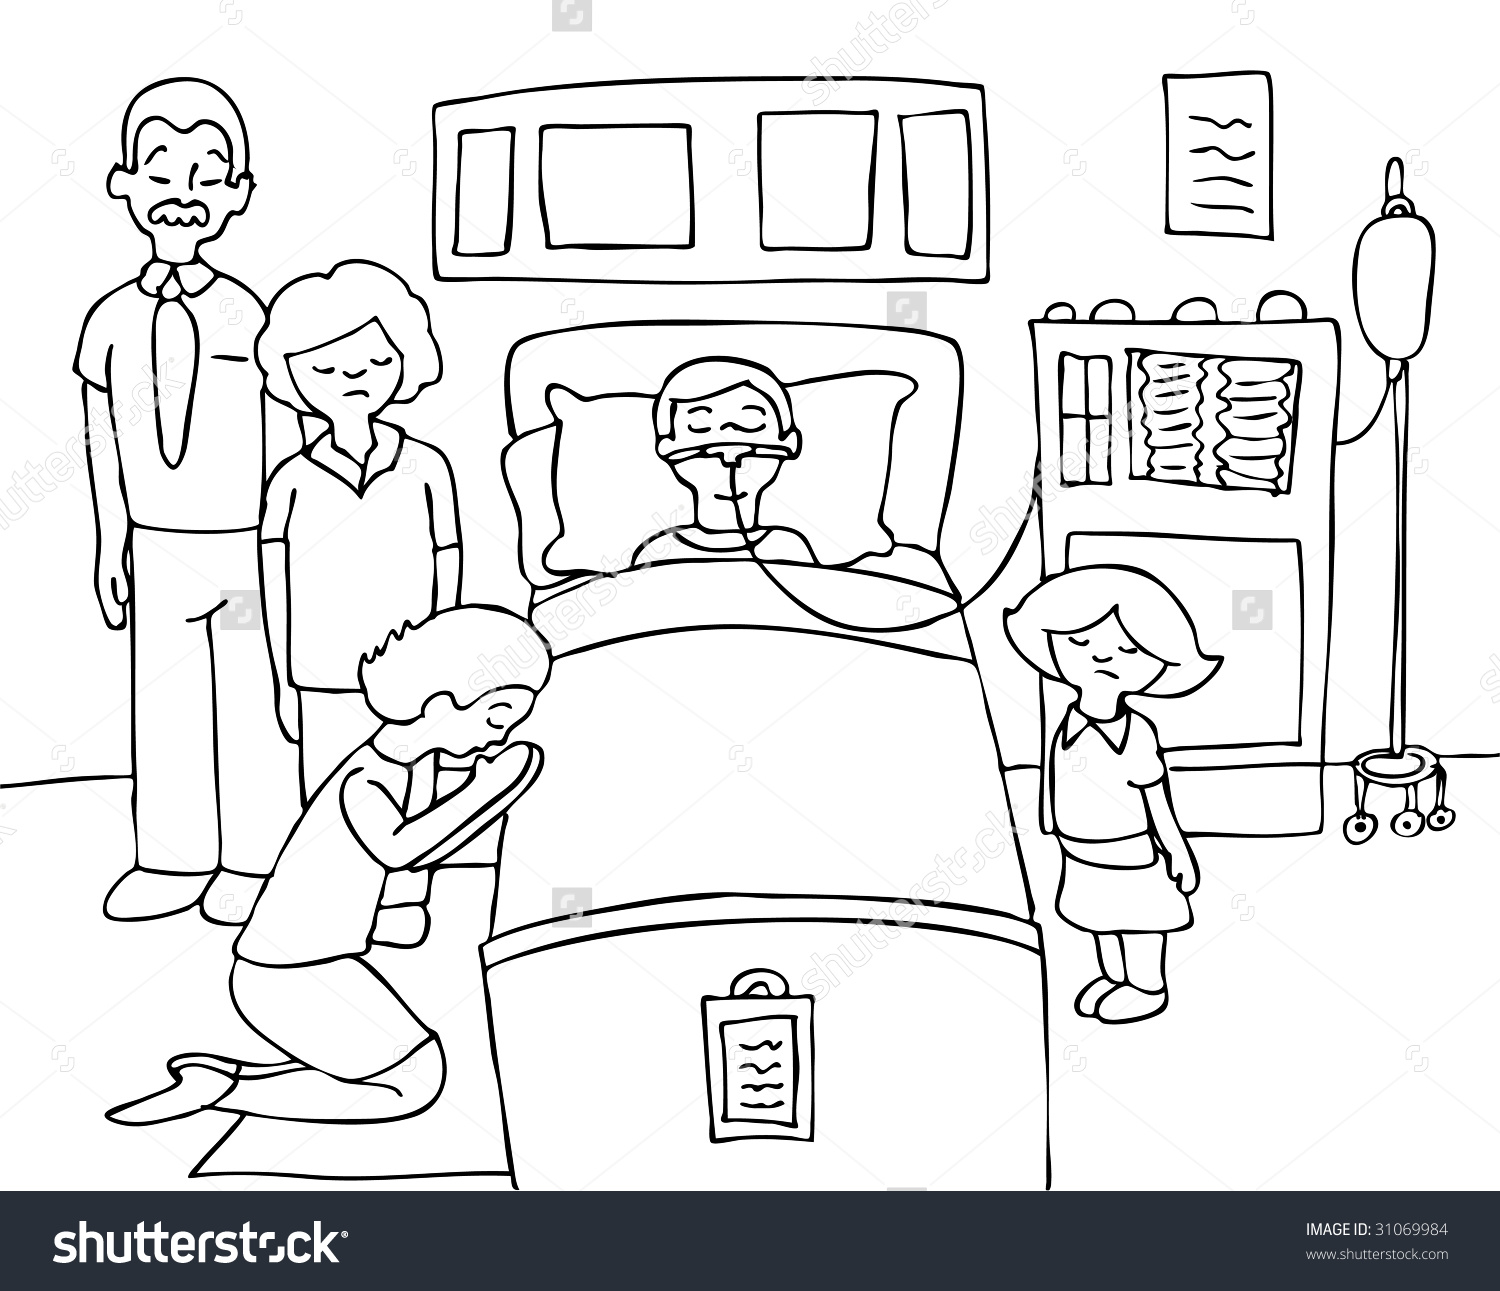 1500x1291 Hospital Cartoon Drawing New Bed Drawing Respiratory Therapist